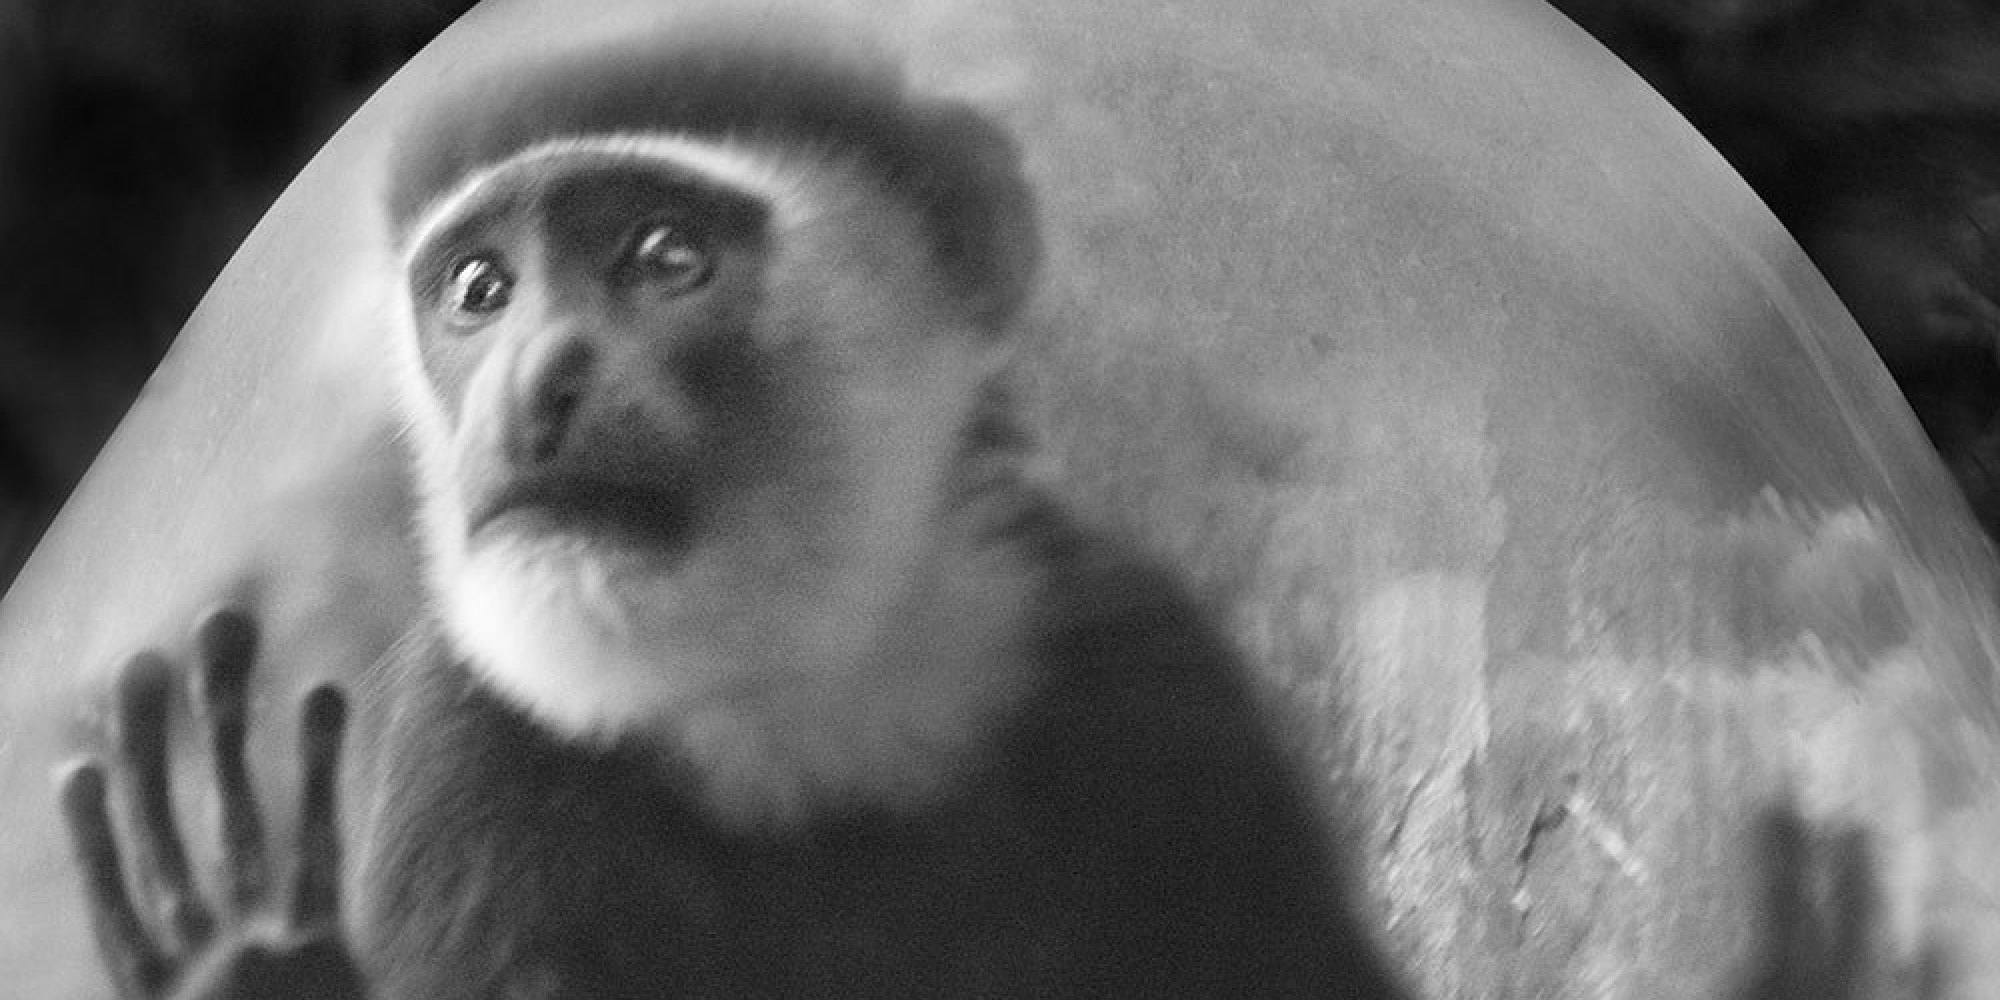 10 Touching Photos Of Monkeys In Captivity Will Bring Tears To Your Eyes